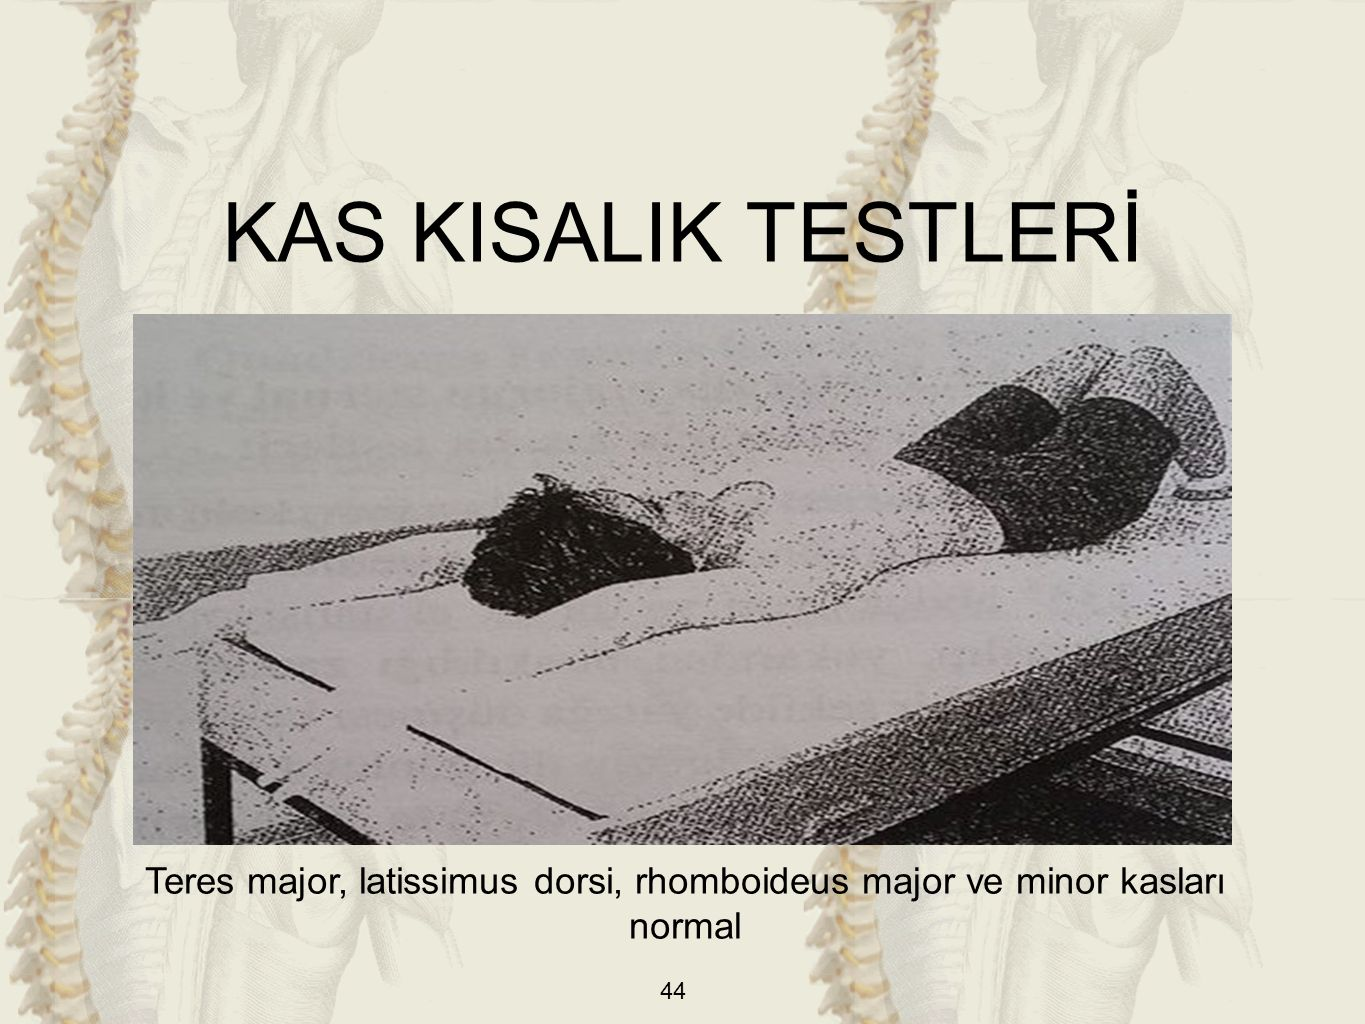 KAS KISALIK TESTLERİ Teres major, latissimus dorsi, rhomboideus major ve minor kasları normal